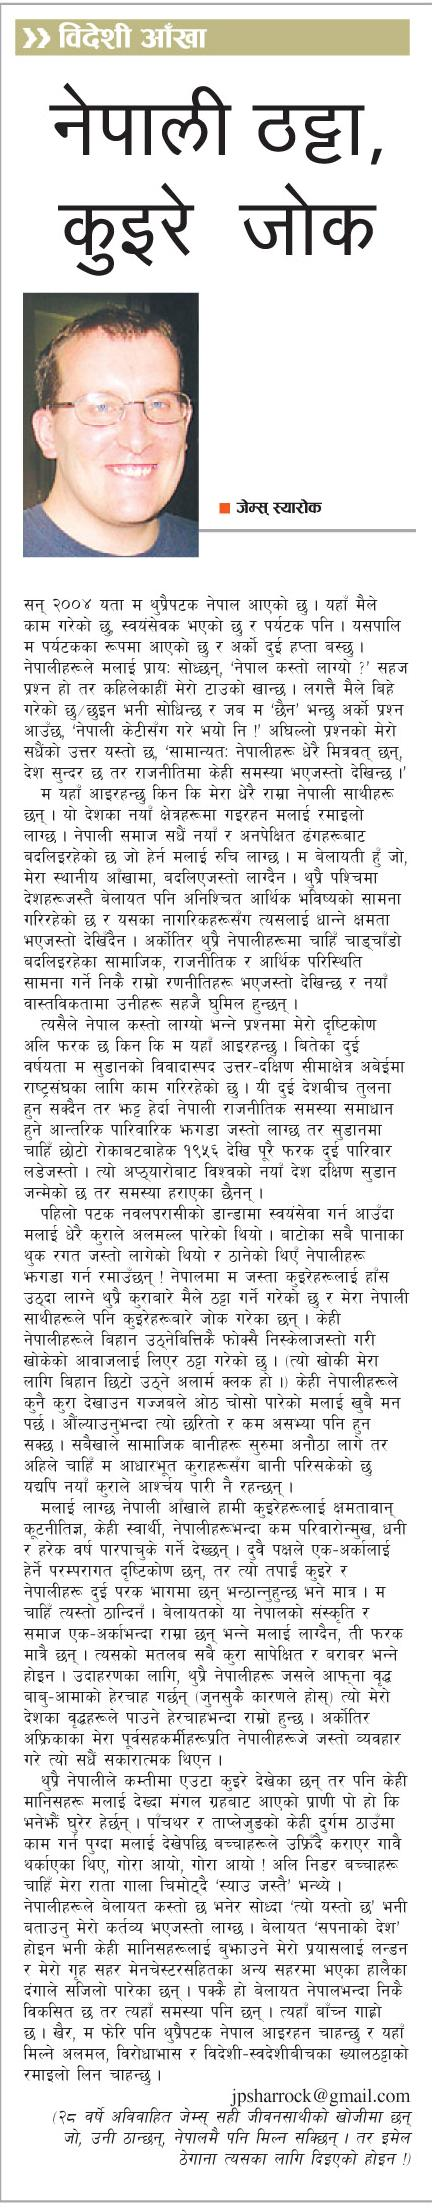 James Sharrock Kantipur article in Nepali